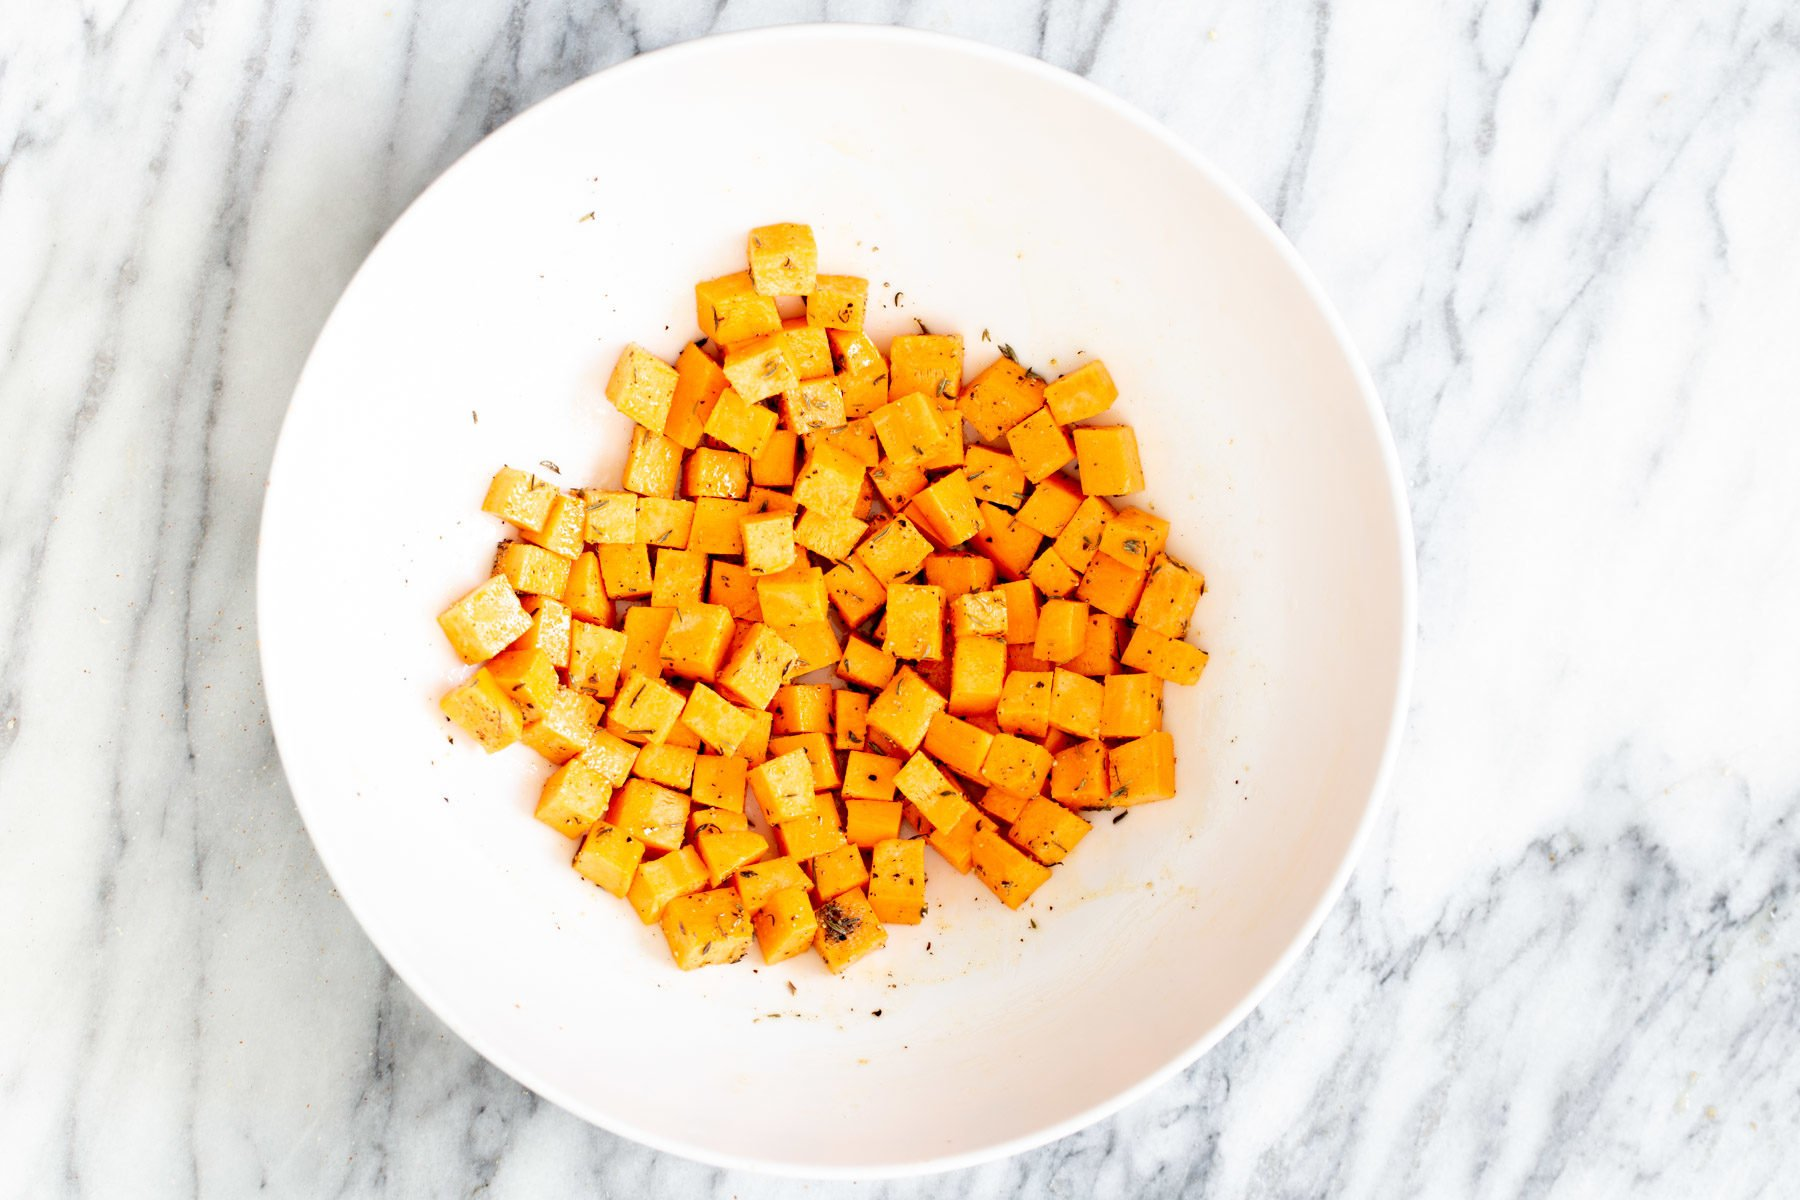 sweet potato cubes mixed with seasoning and oil in a small bowl